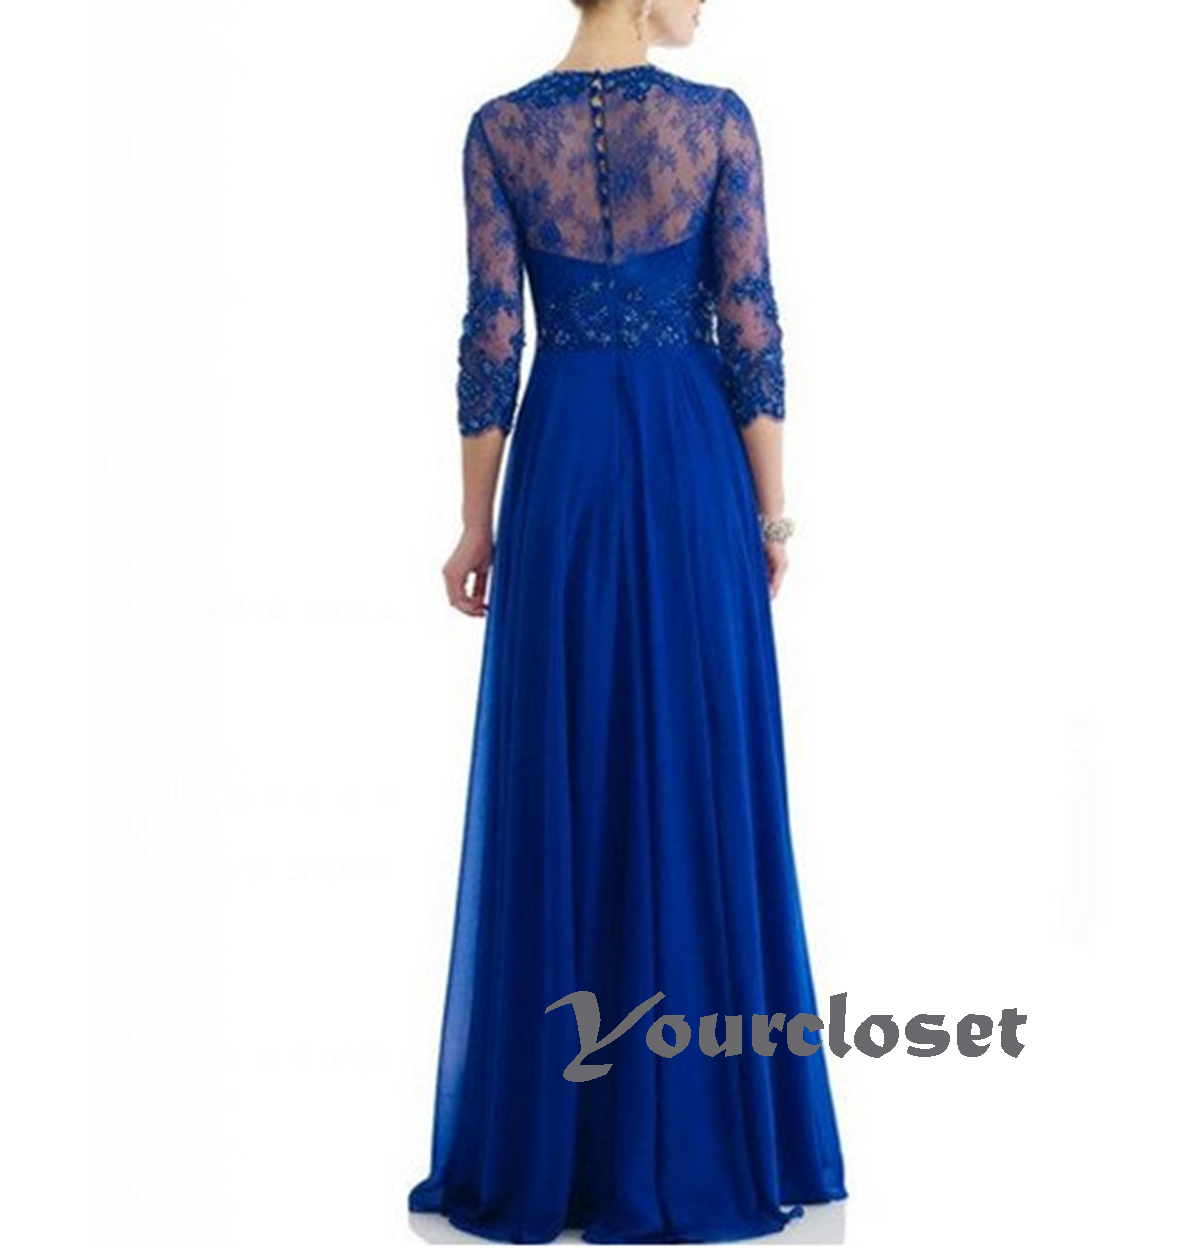 url httpdresses5comimageprom dress stores in charlotte nc6 1200x1260